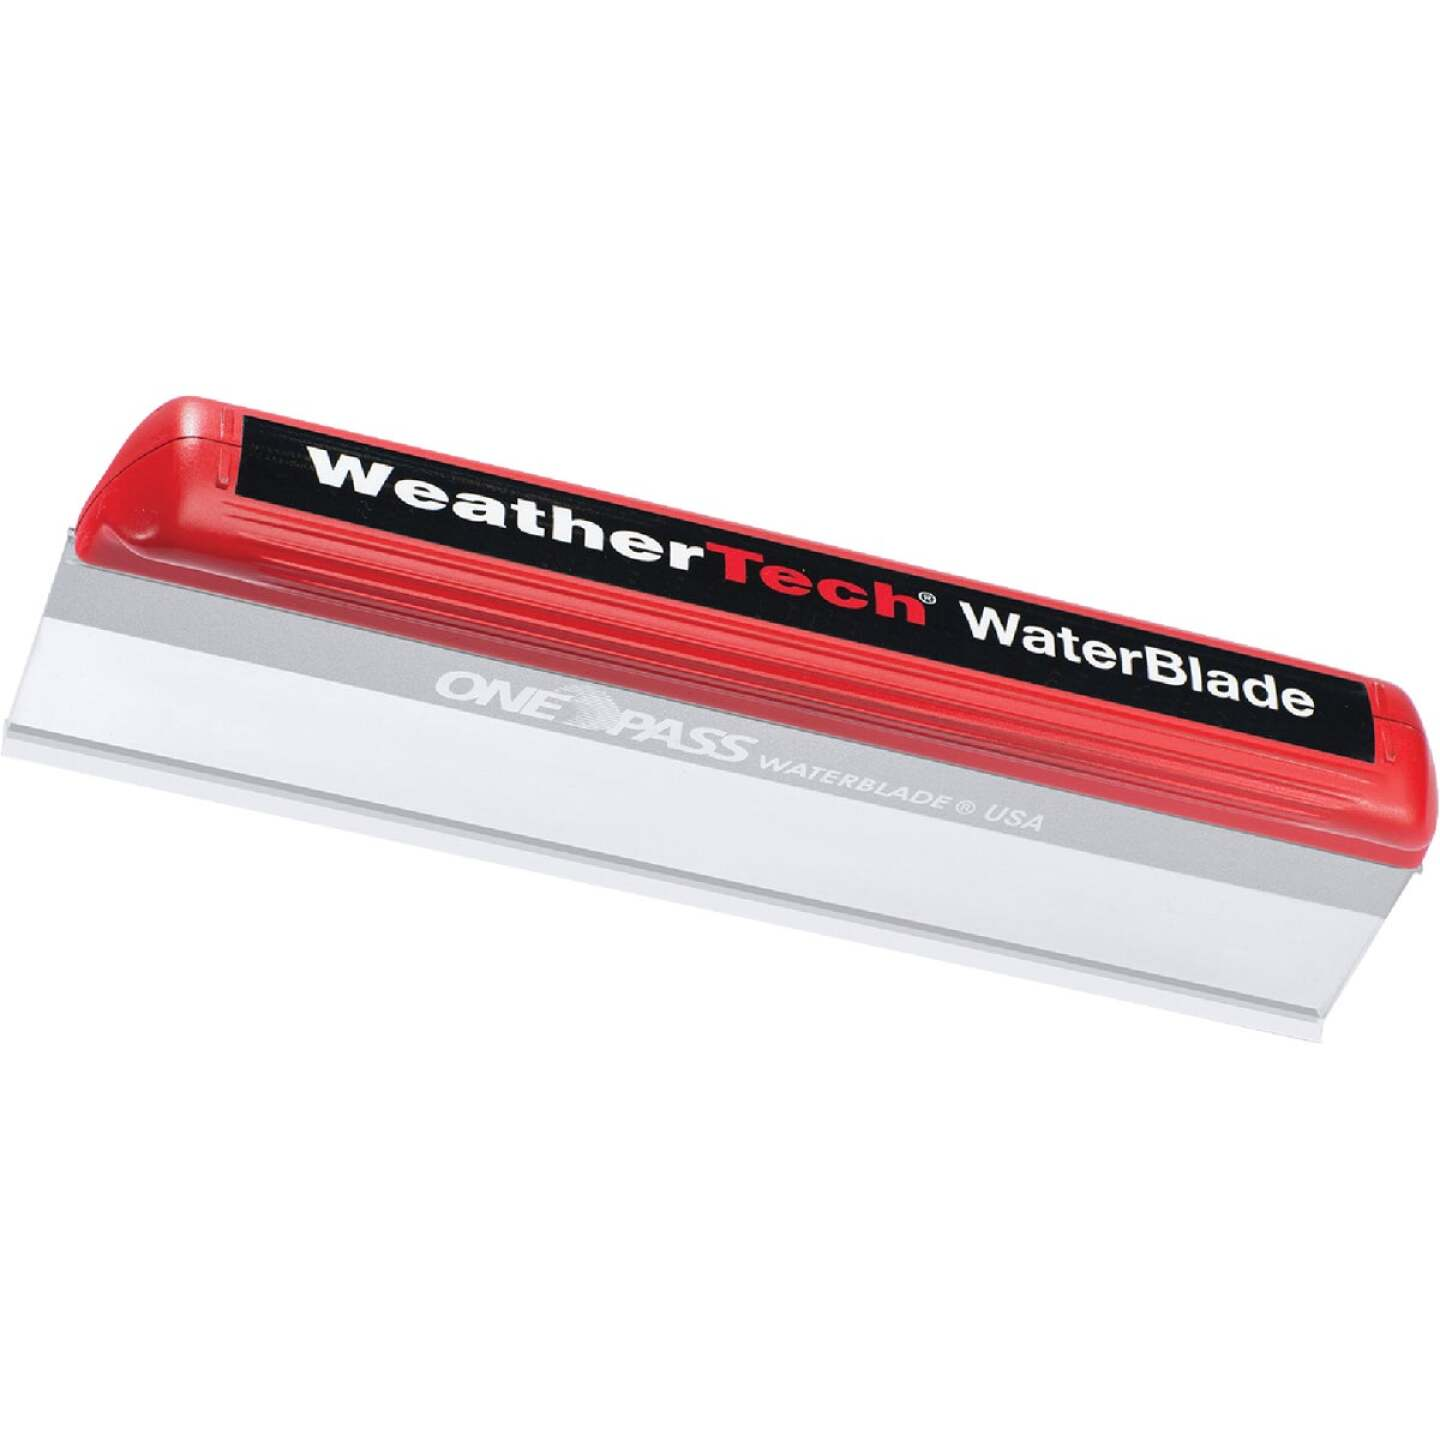 WeatherTech WaterBlade 12 In. Silicone Squeegee Image 1